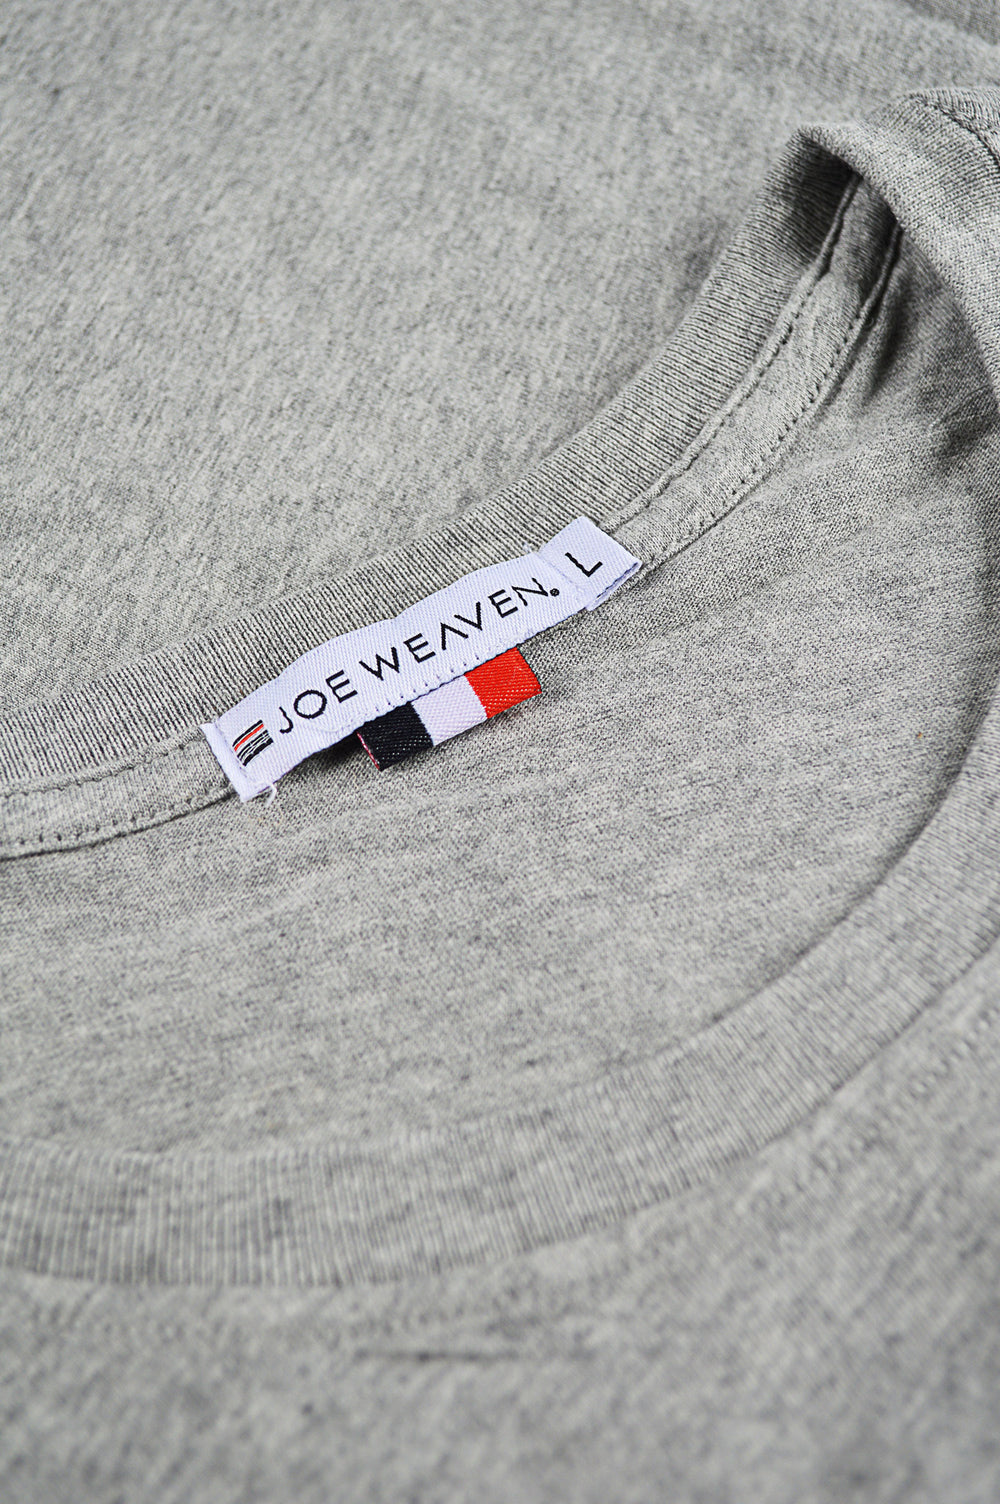 collar grey t-shirt